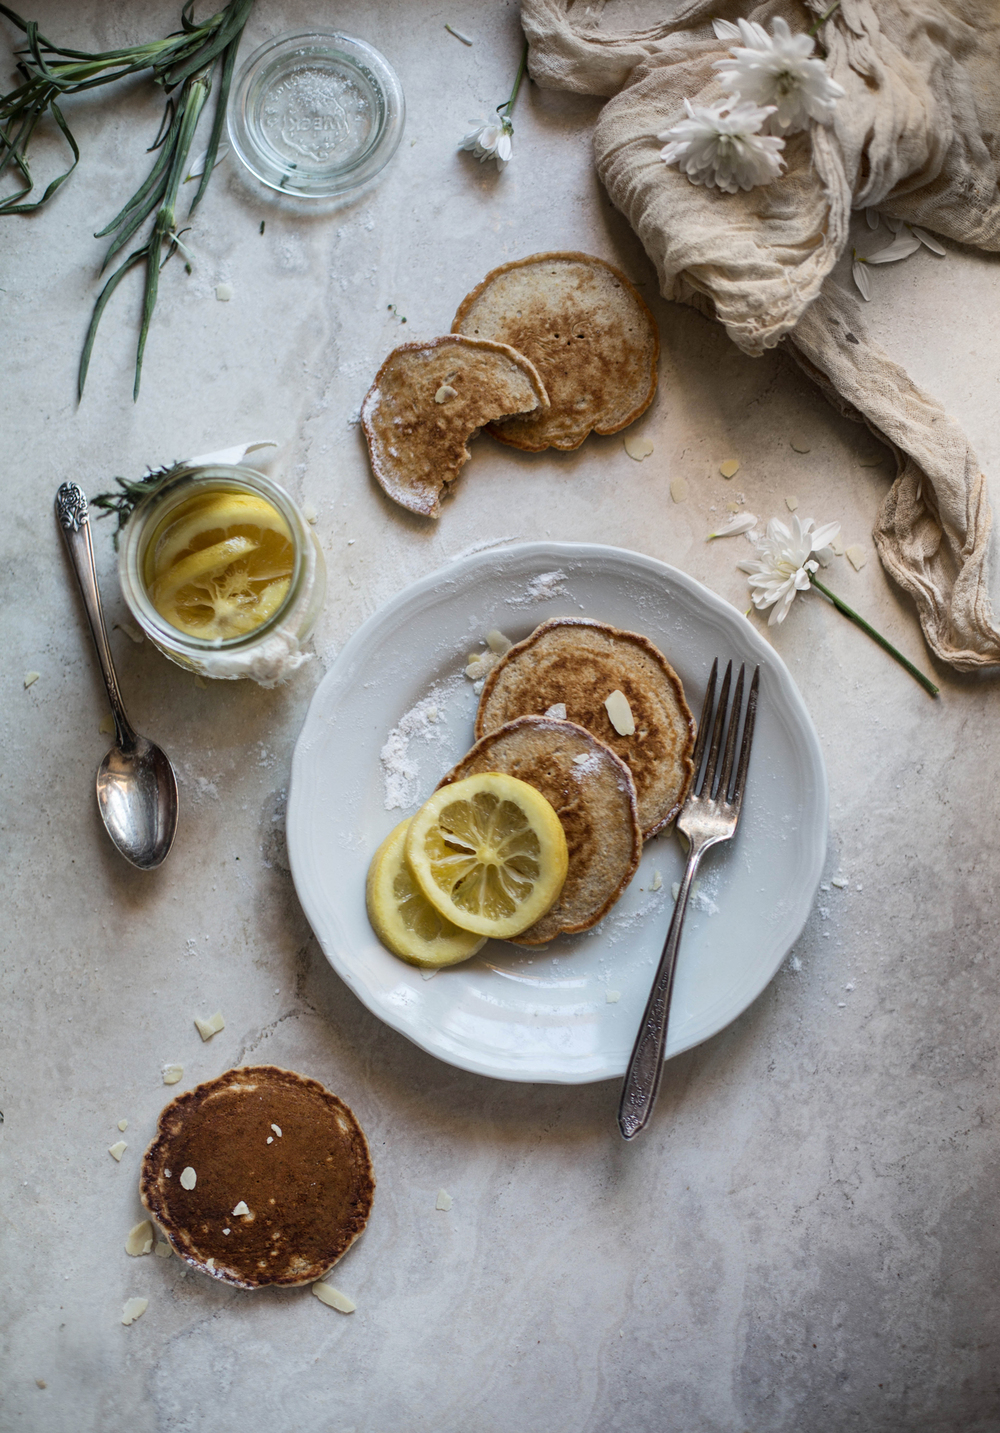 Sourdough Lemony Cinnamon Pancakes, via Hortus Natural Cooking